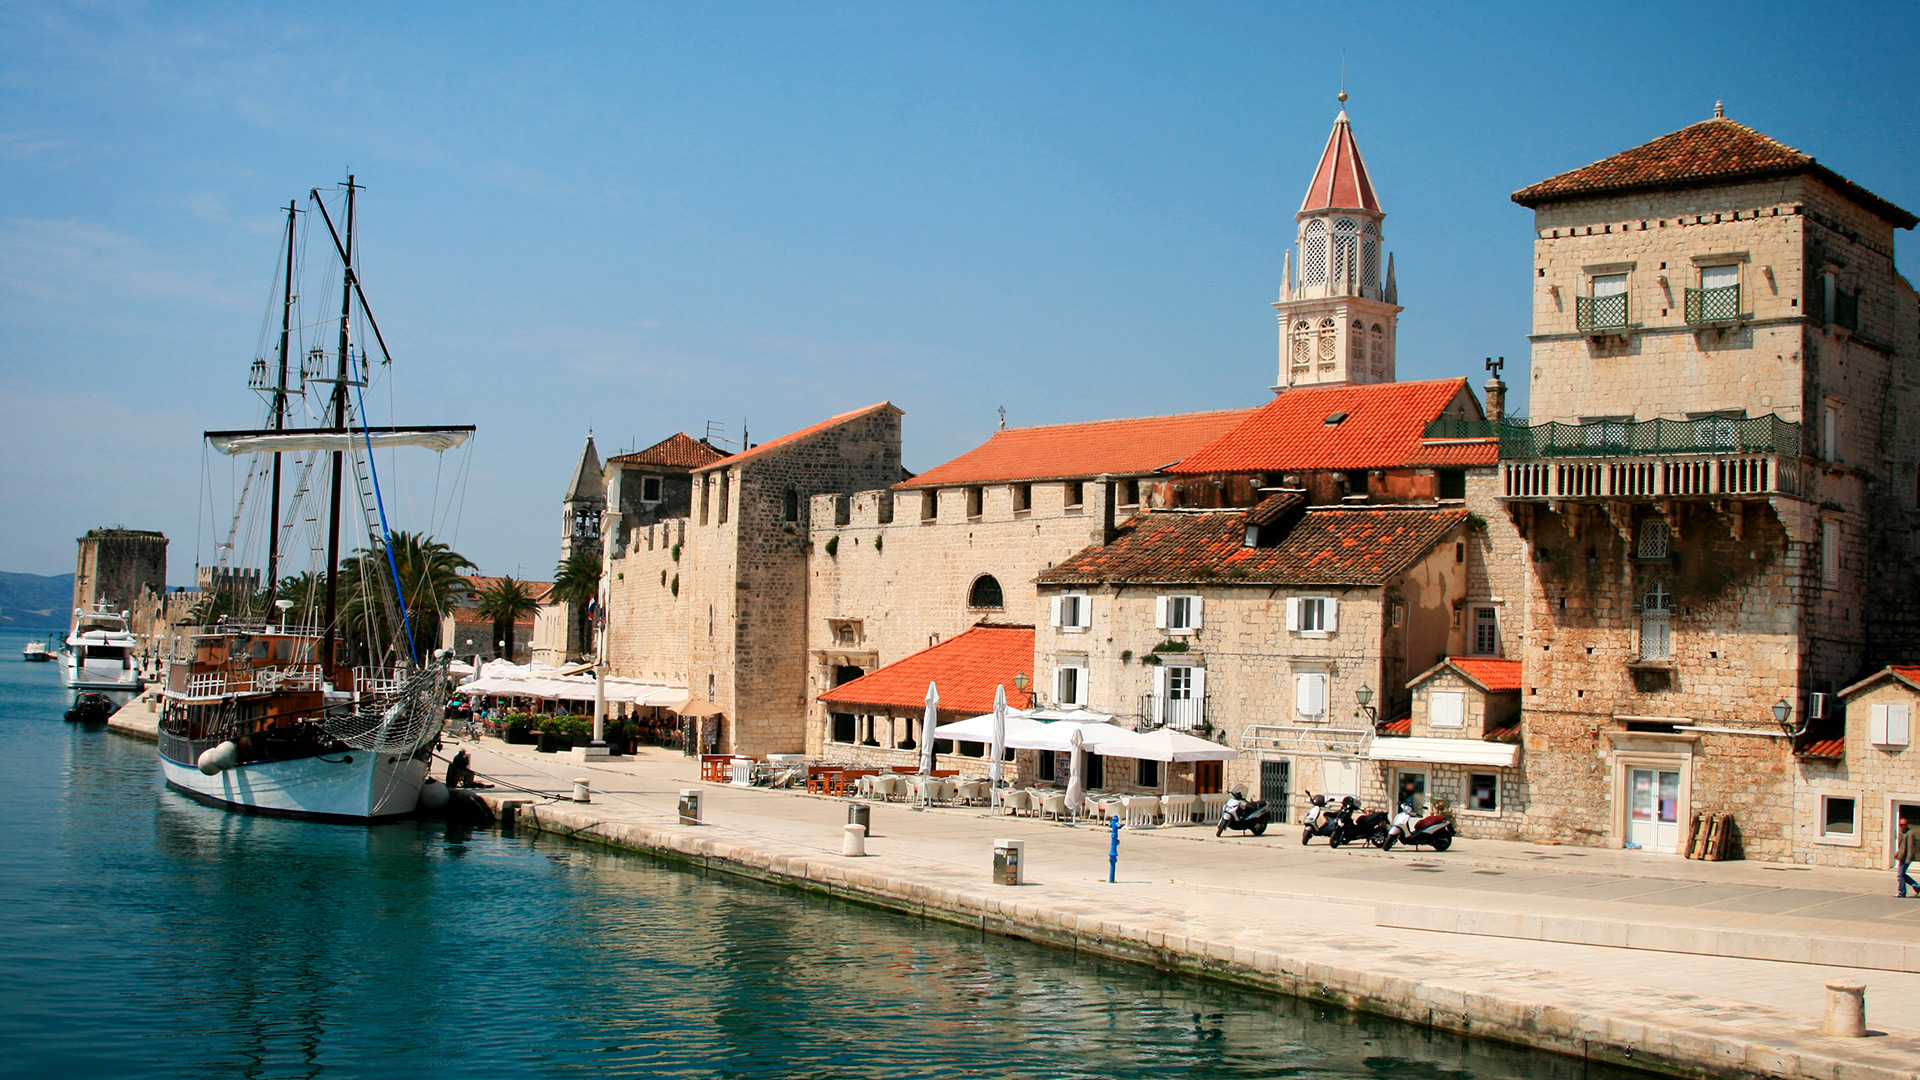 City promenade in the Old town, Trogir, Croatia - SimpleSail sailing routes